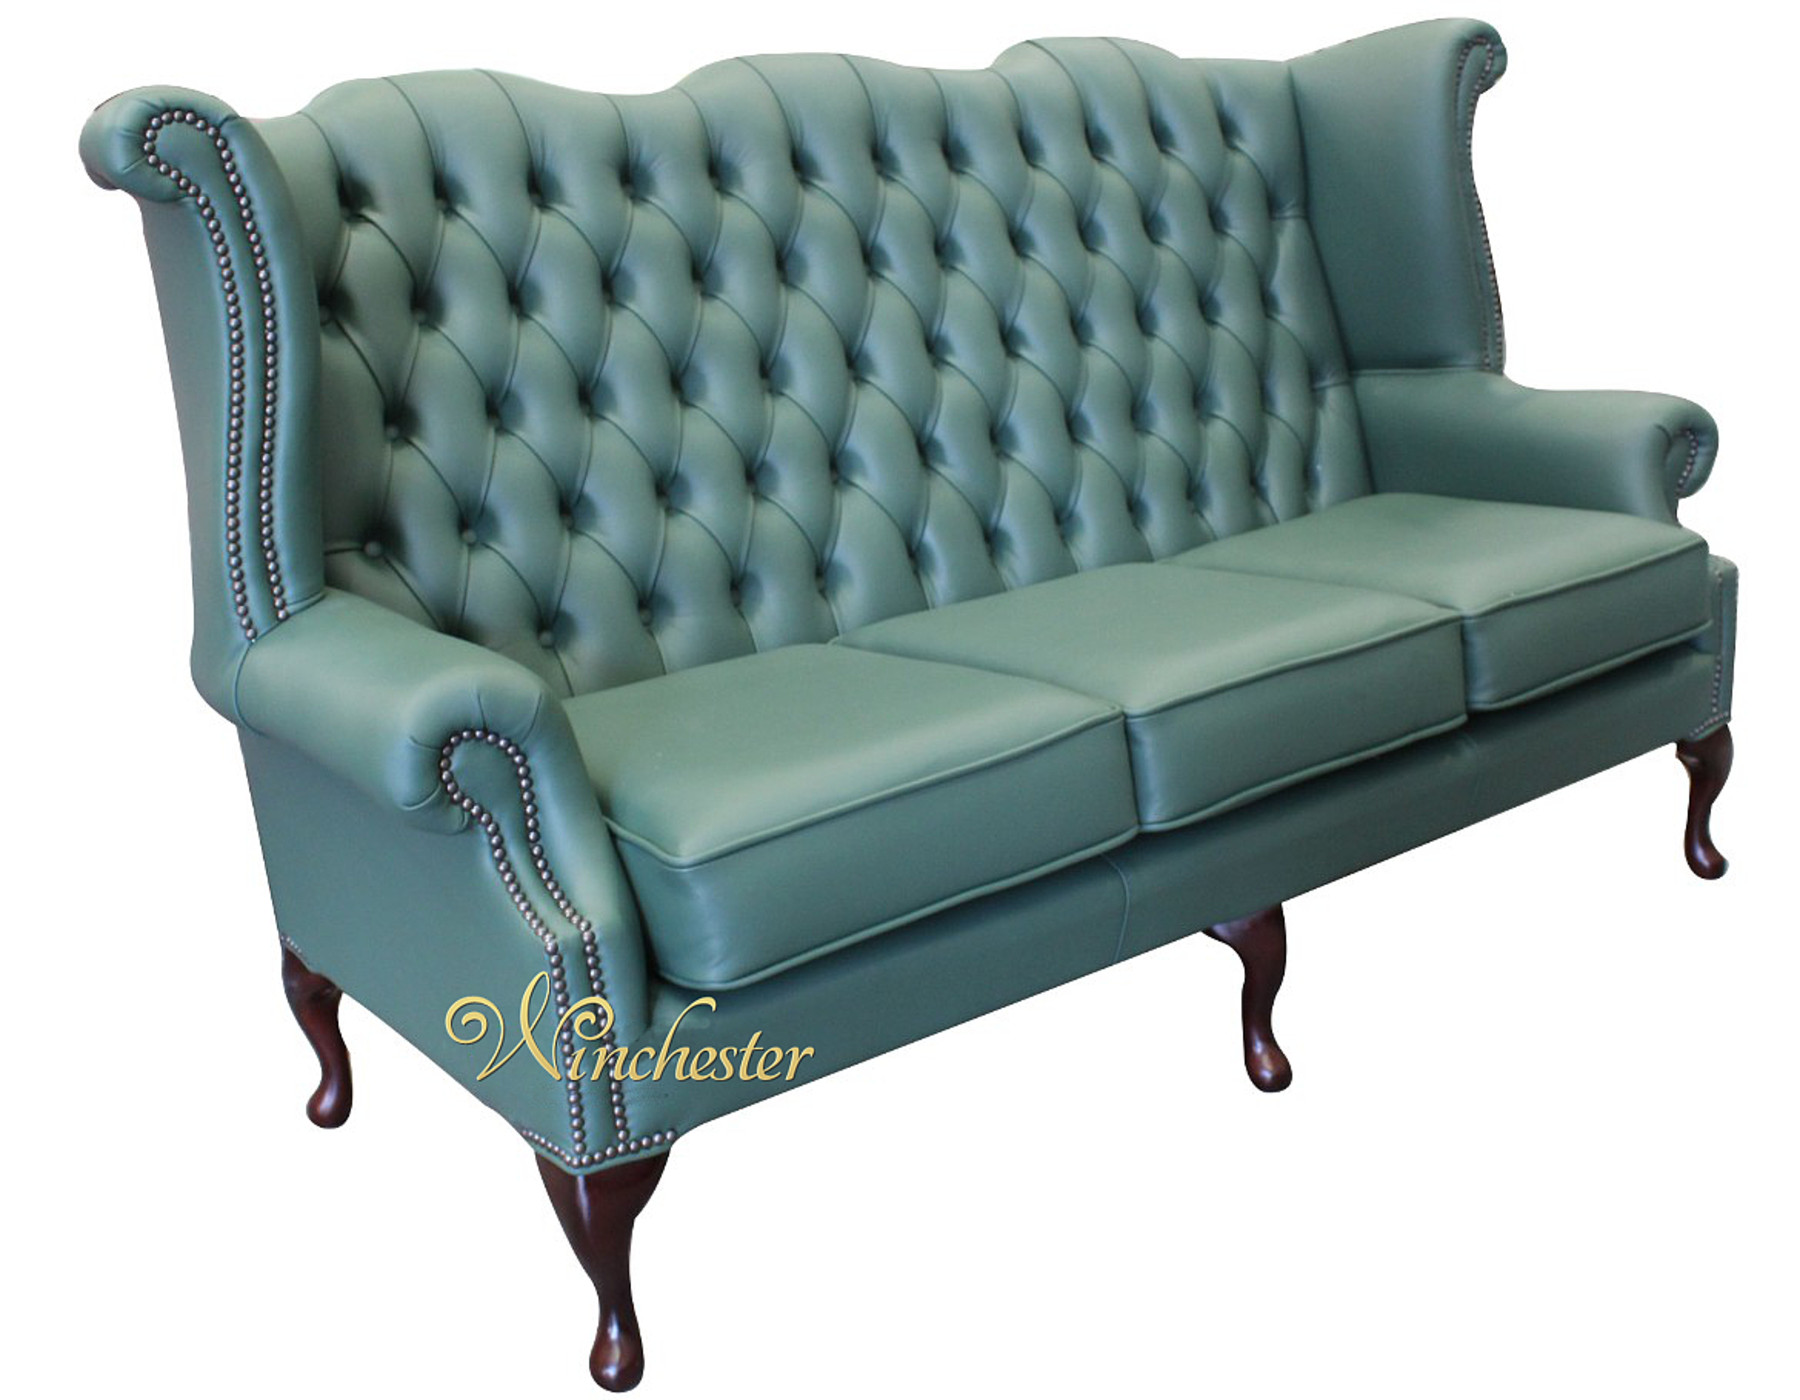 Chesterfield 3 Seater Queen Anne High Back Wing Sofa Jade Green